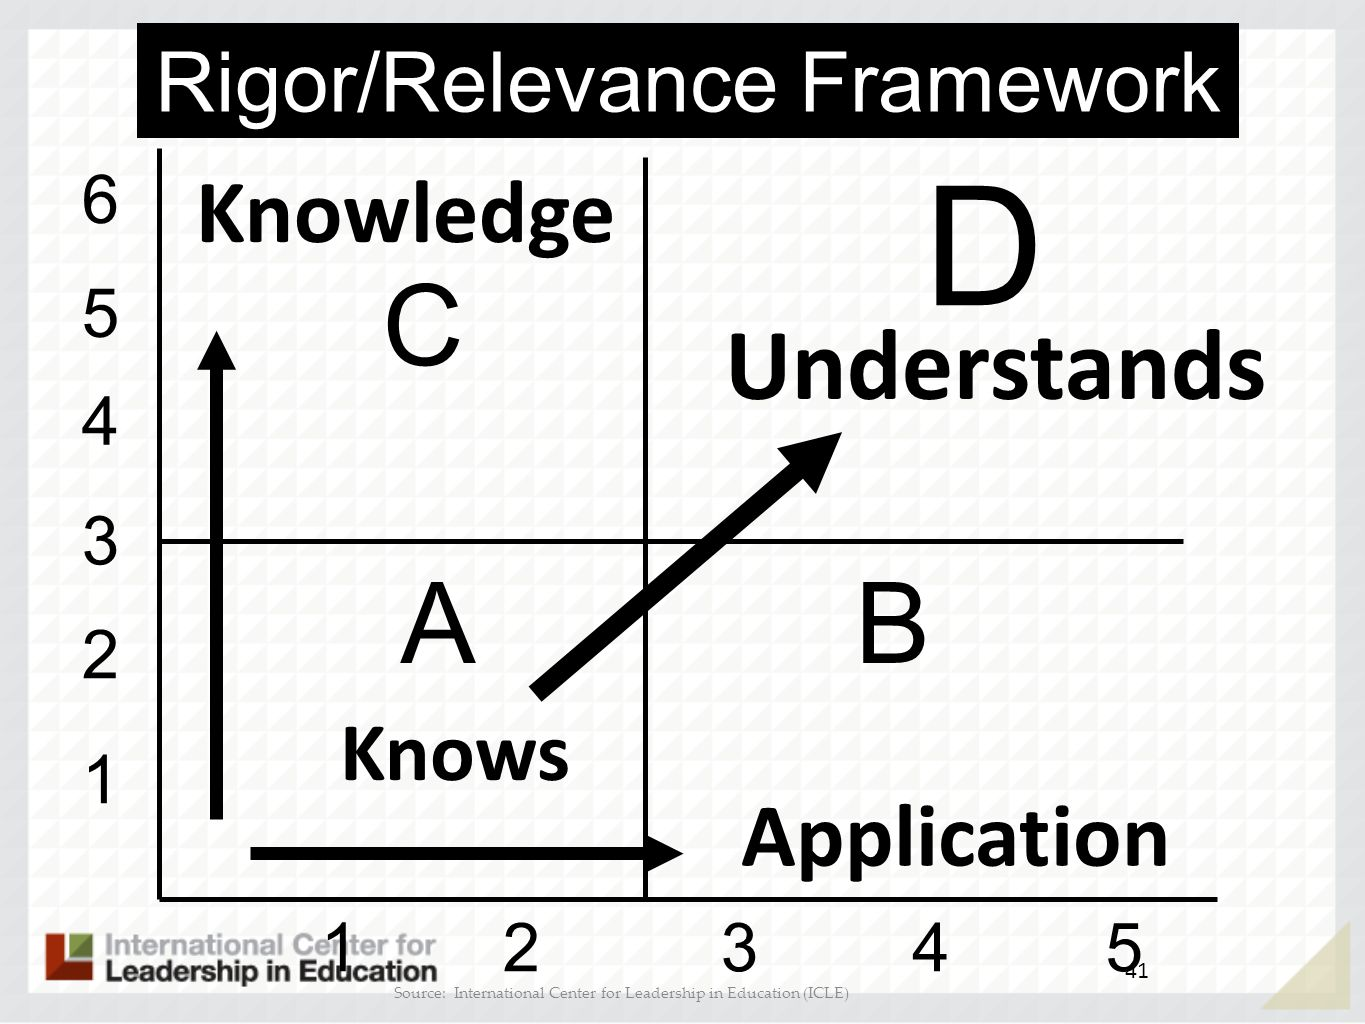 D C A B Understands Knowledge Application Rigor/Relevance Framework